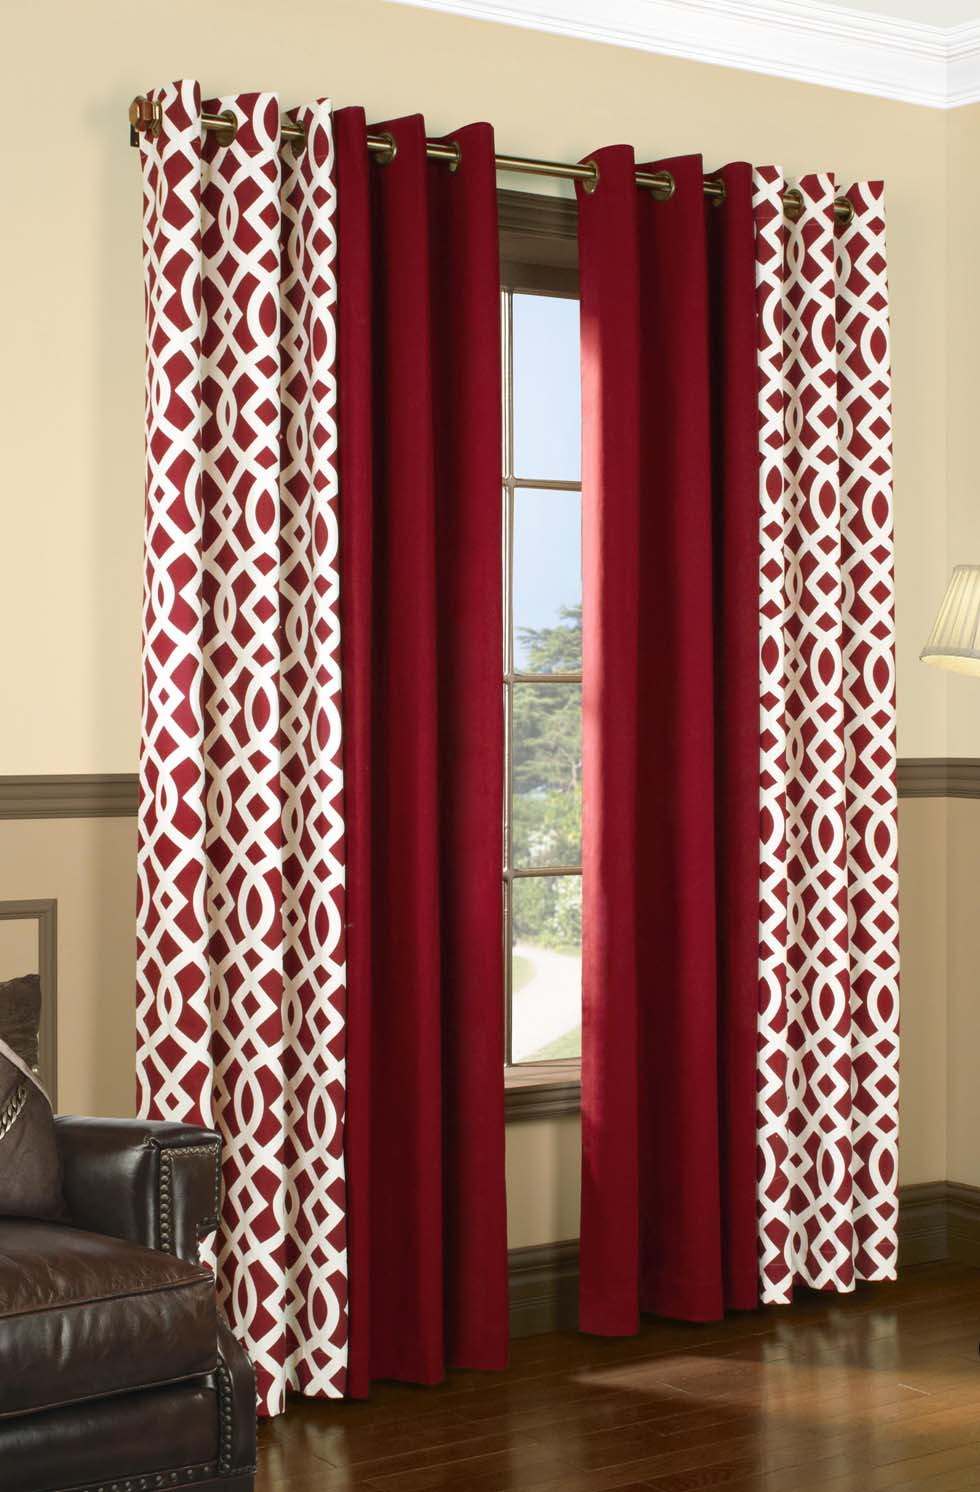 Window Drapes | Drapes for Windows Living Room | Sears Curtains